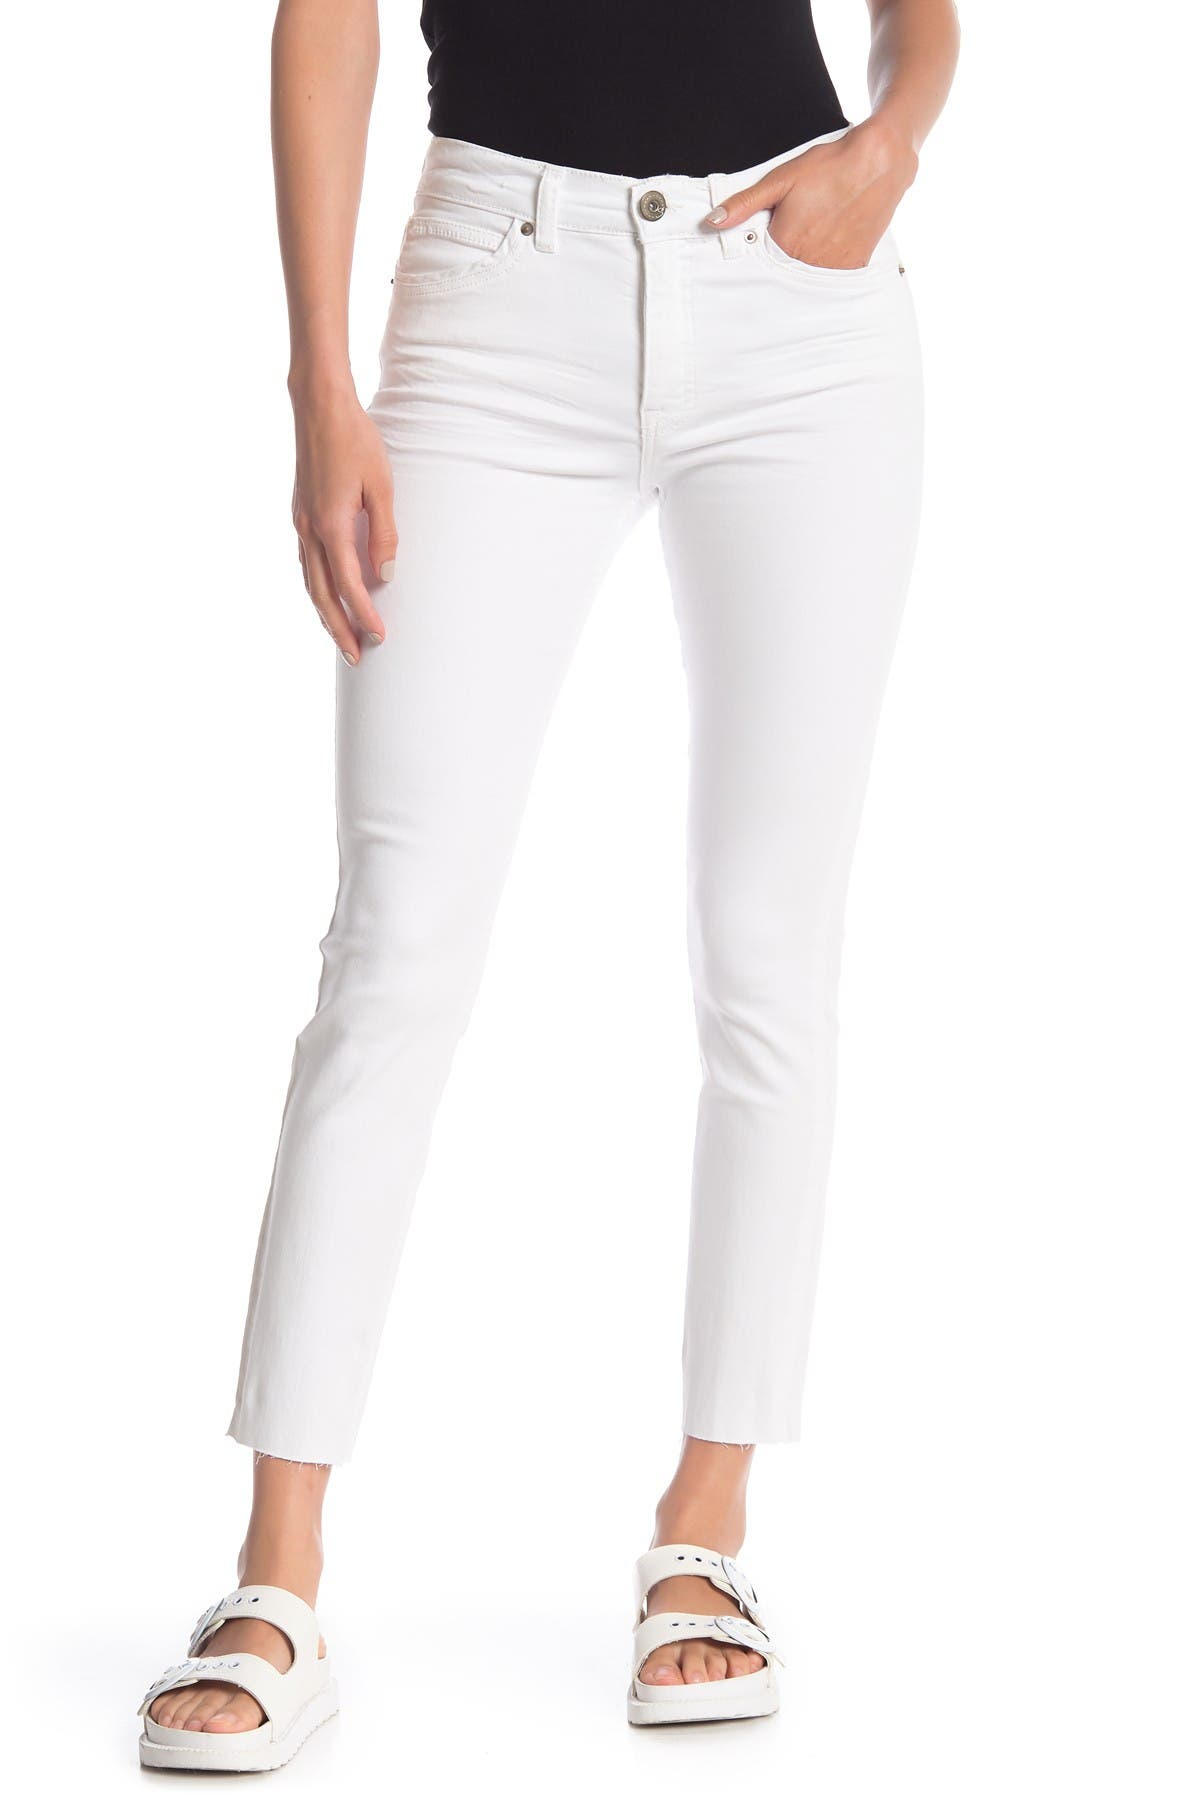 Image of SUPPLIES BY UNIONBAY Hart Raw Hem Skinny Jeans